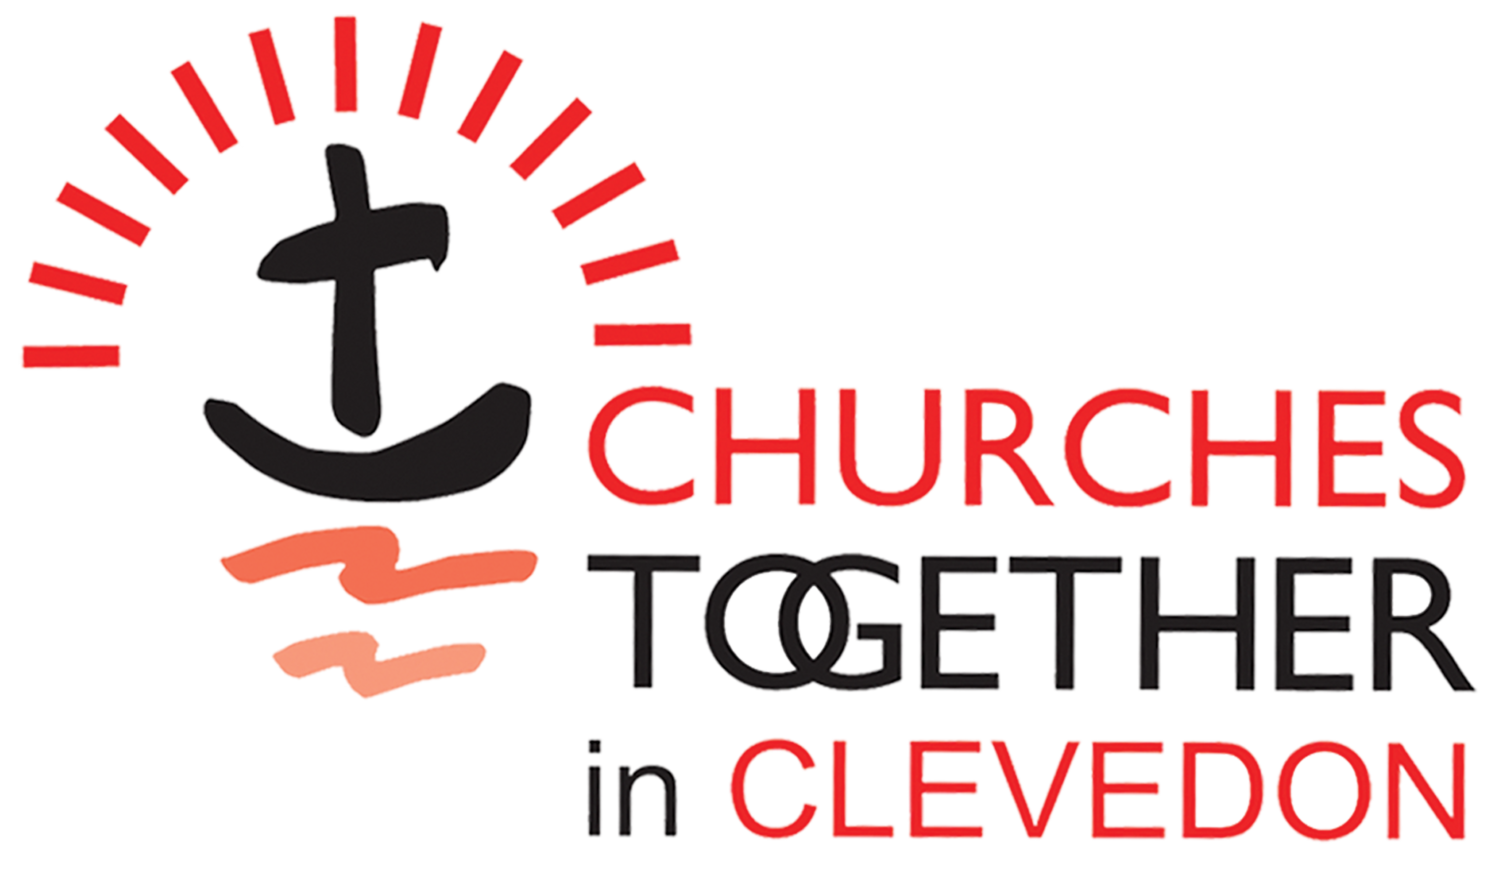 Churches Together in Clevedon